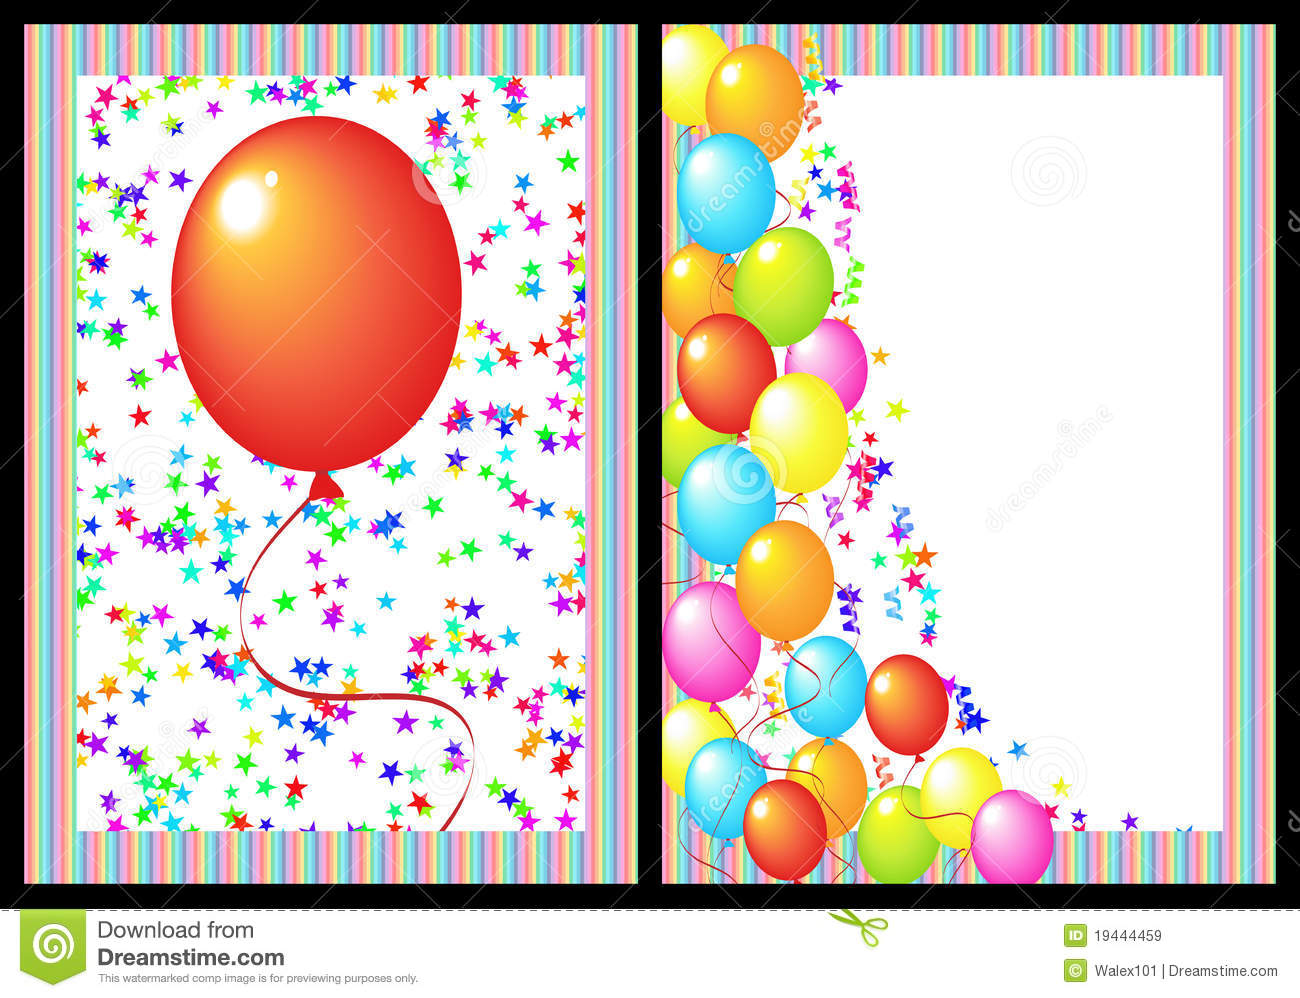 happy birthday greeting cards pictures ; happy-birthday-greeting-card-front-back-19444459